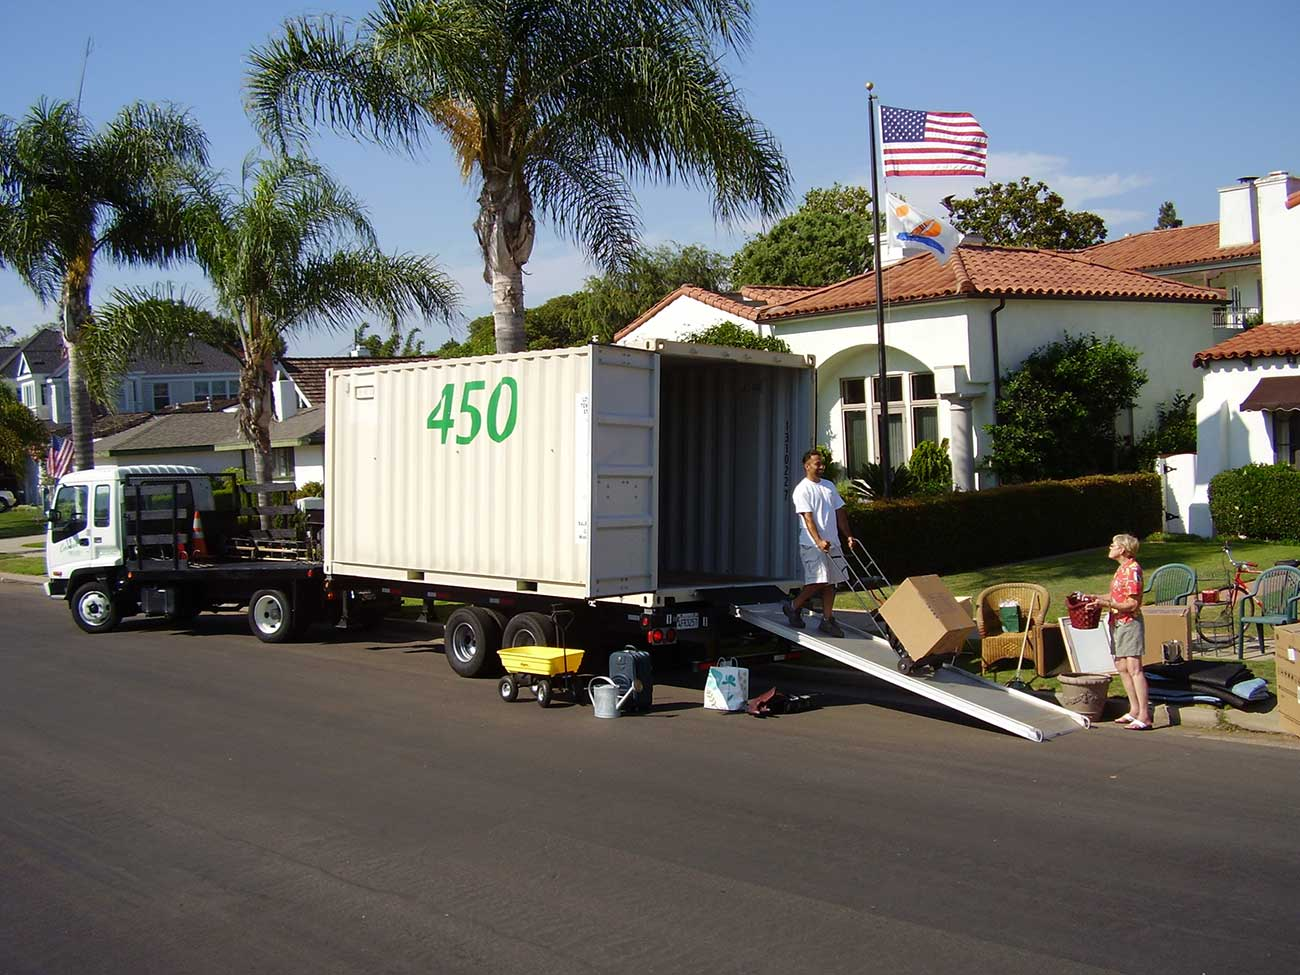 A photo of a person unloading items from a Coronado Mobile Storage container in San Diego